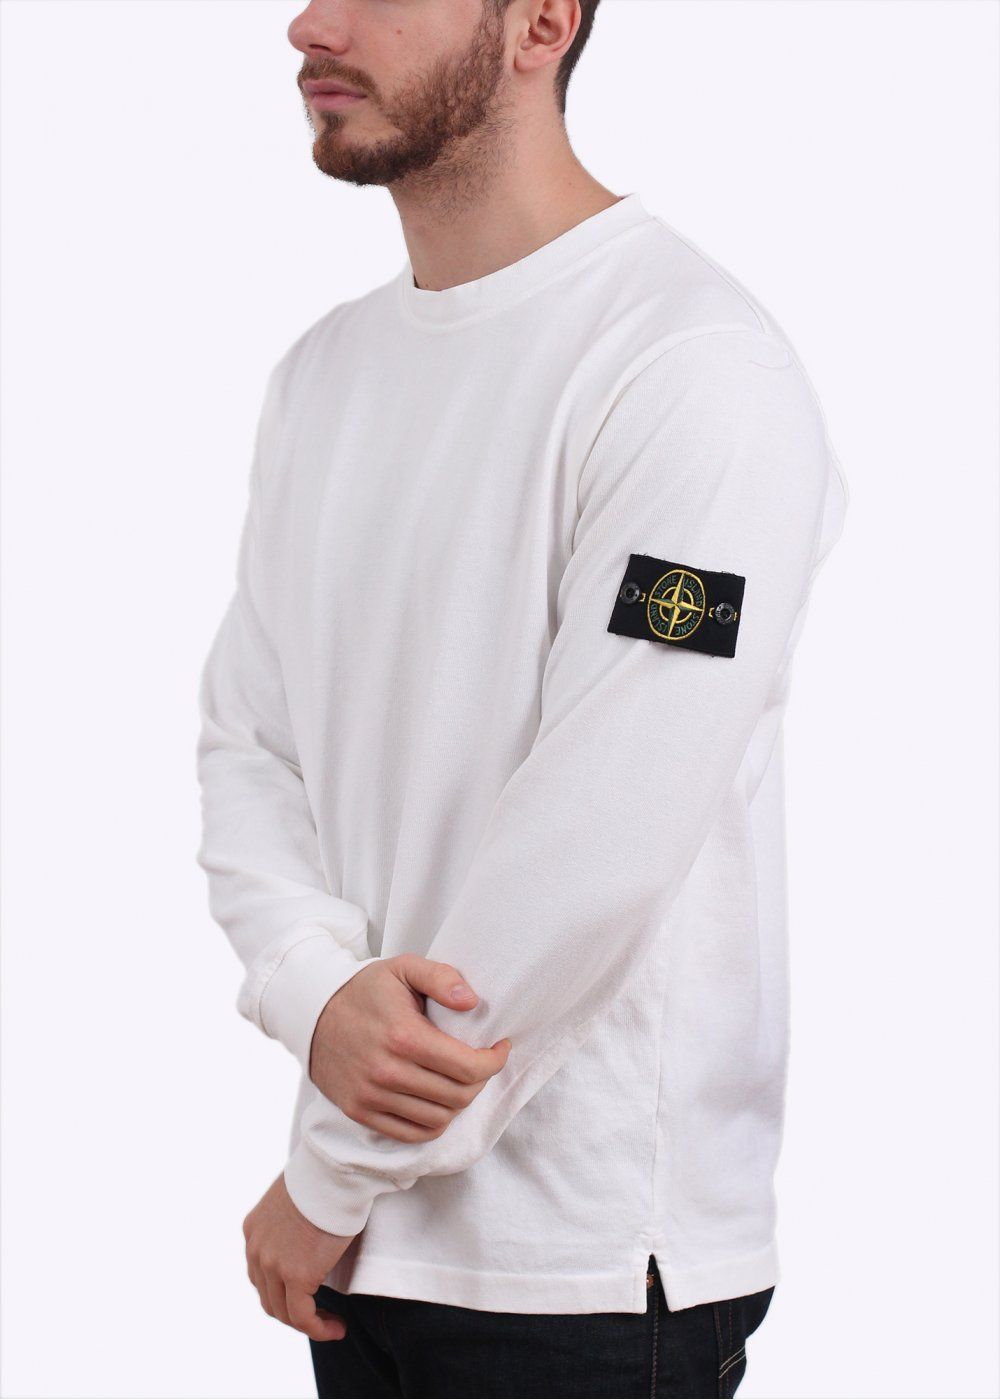 stone island t shirt with badge on arm